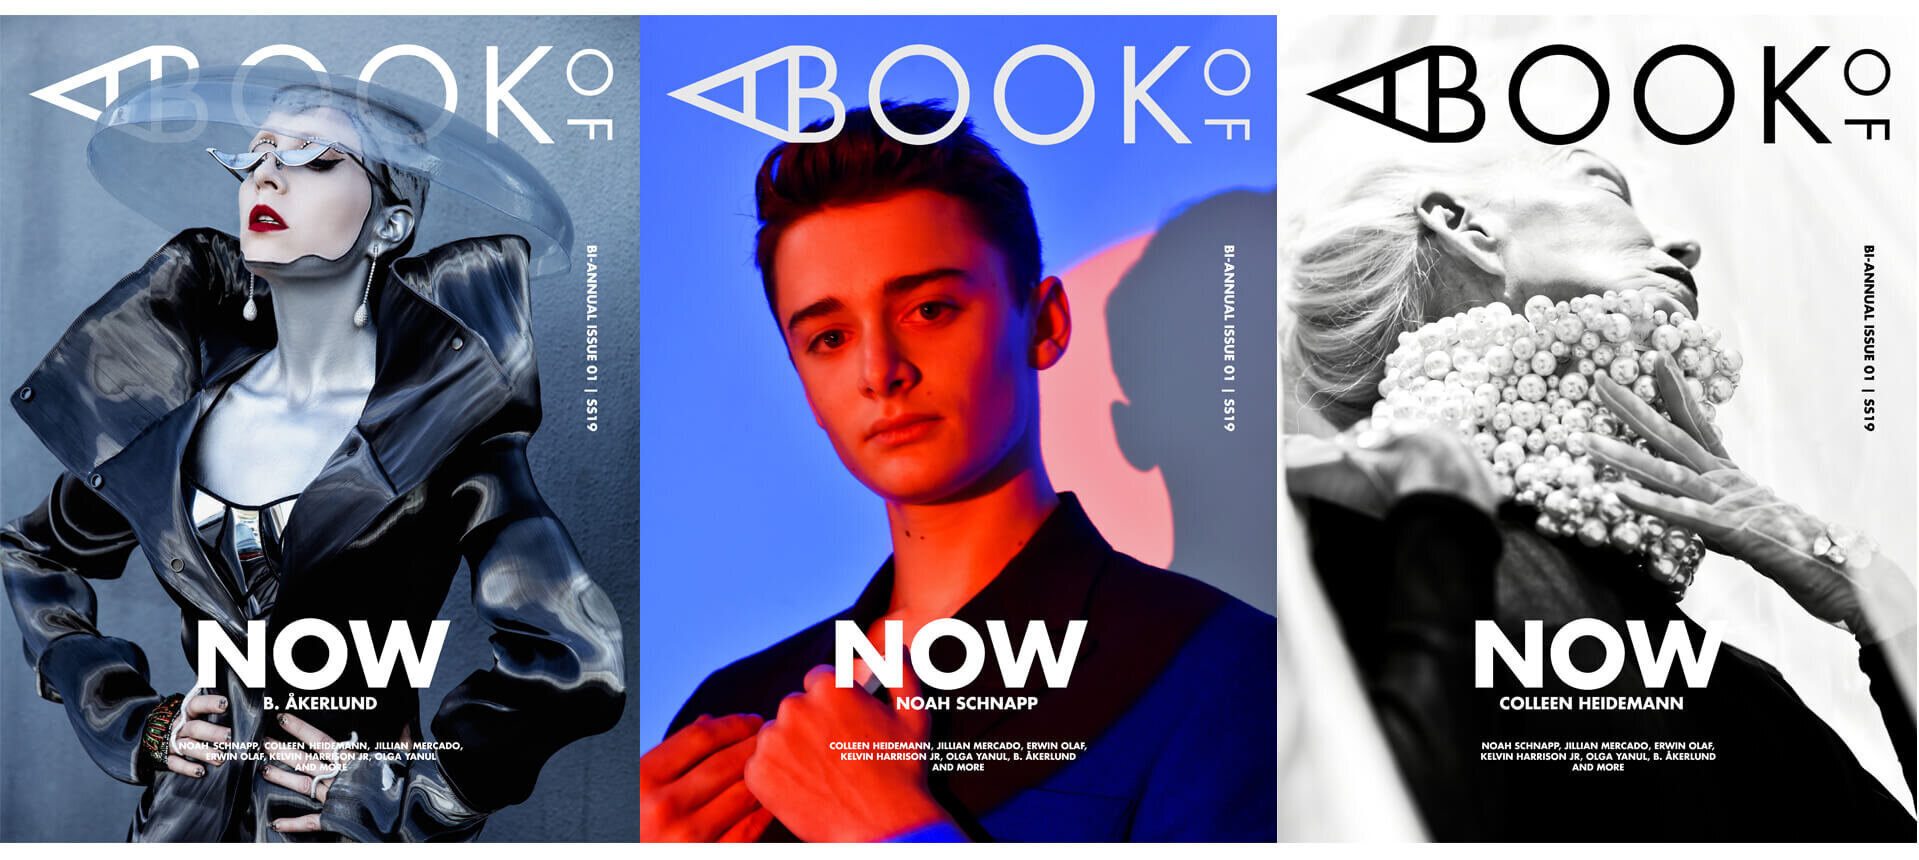 A+BOOK+OF+NOW+PRINT+ISSUE_19.jpg